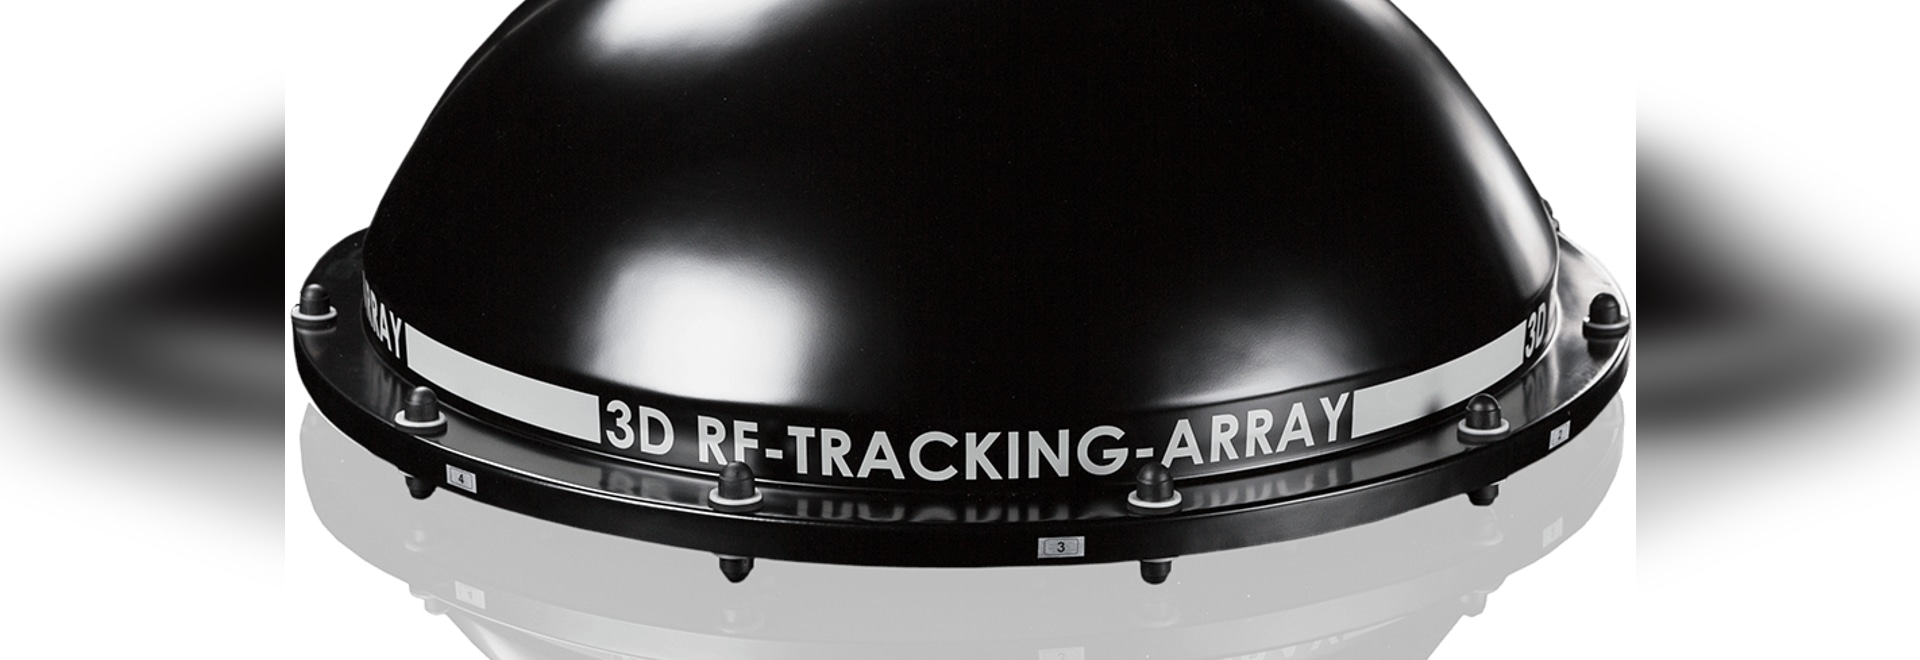 Aaronia´s new 3D RF Tracking Antenna IsoLOG 3D